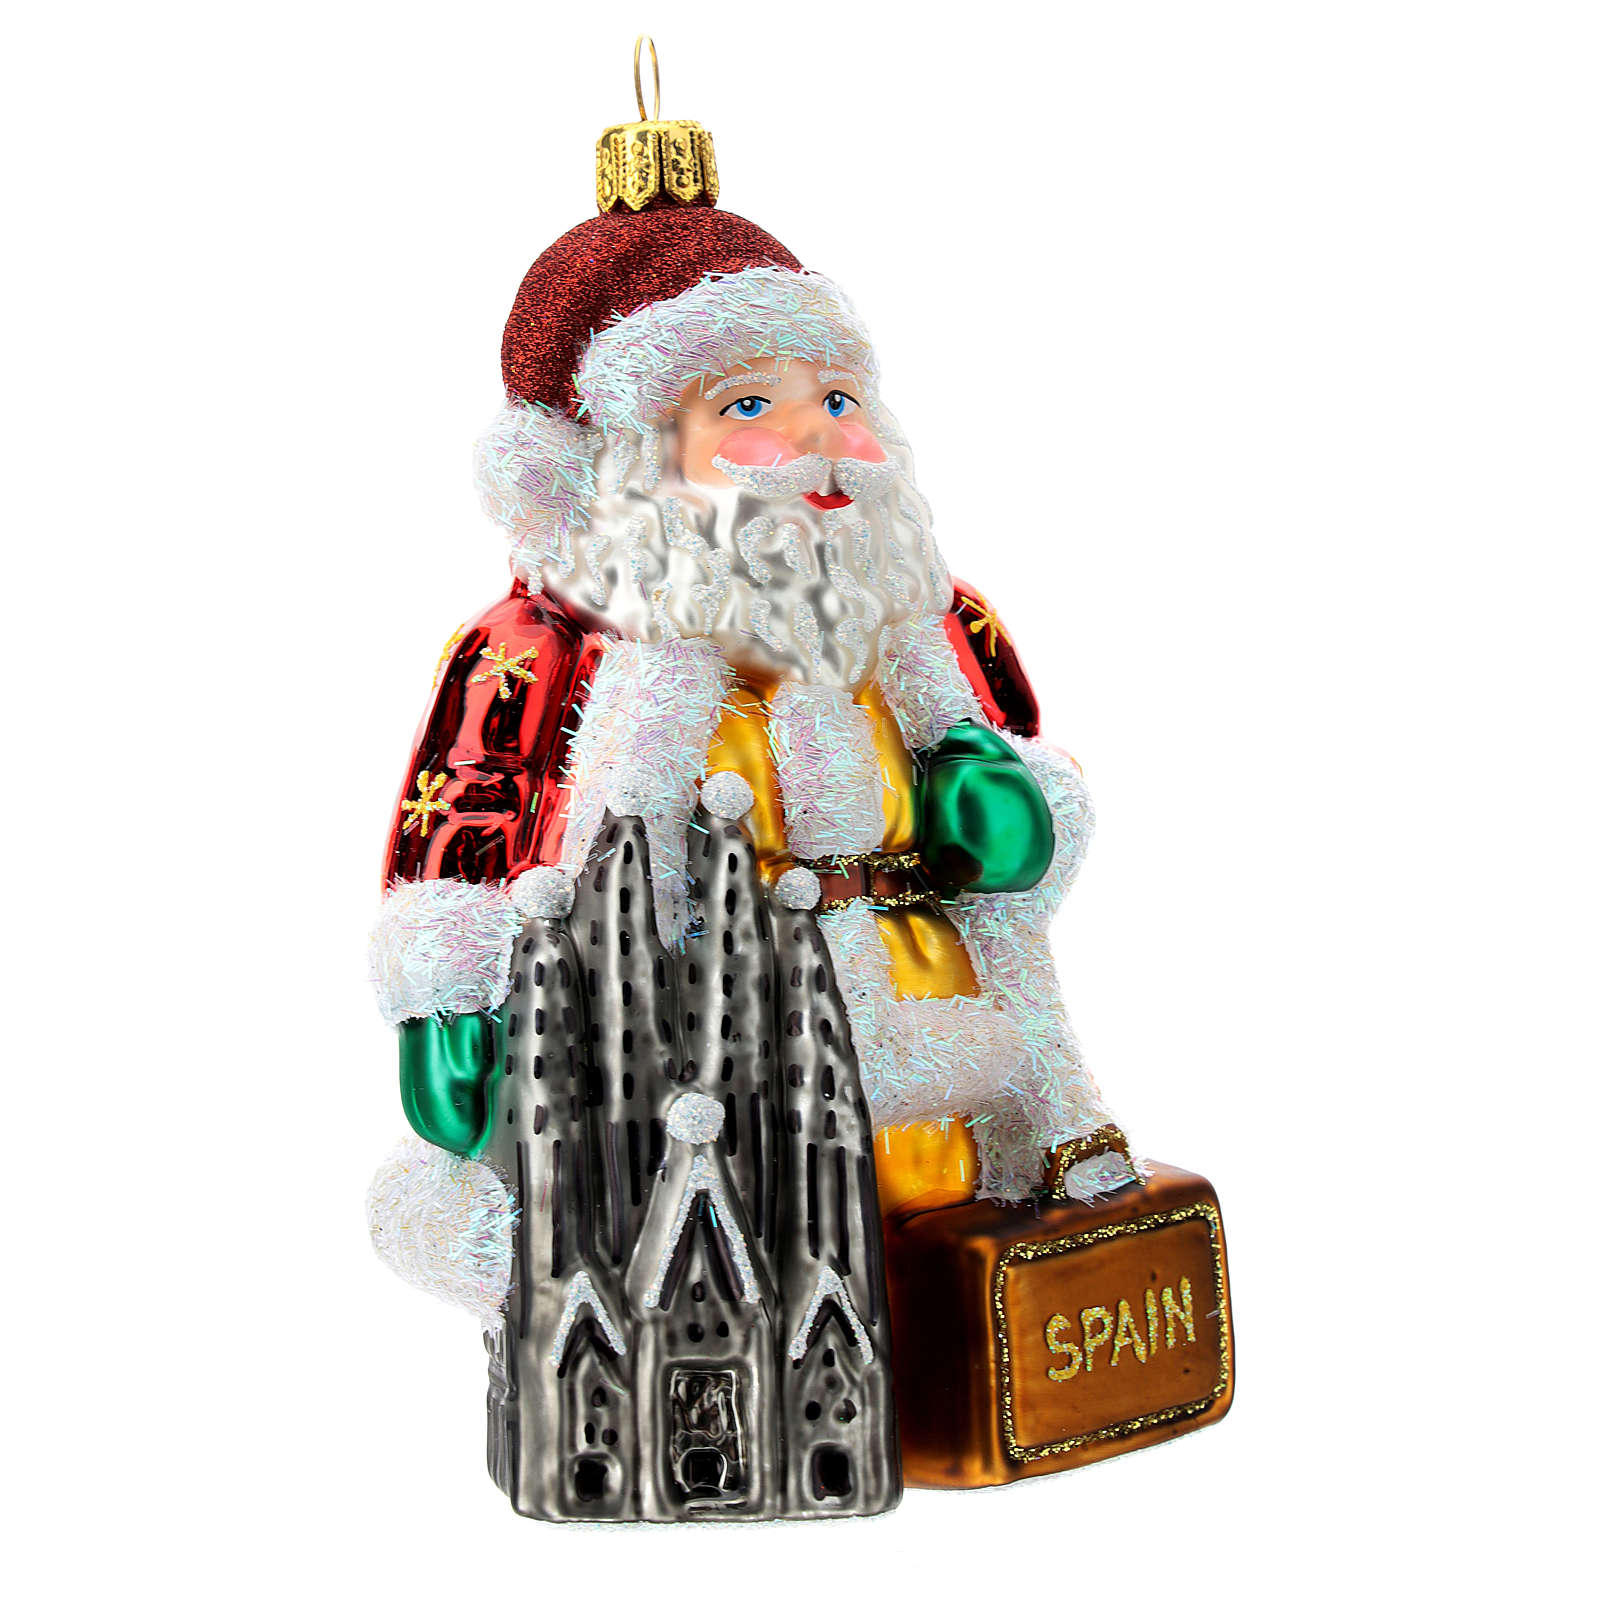 Blown glass Christmas ornament, Santa Claus in Spain 4